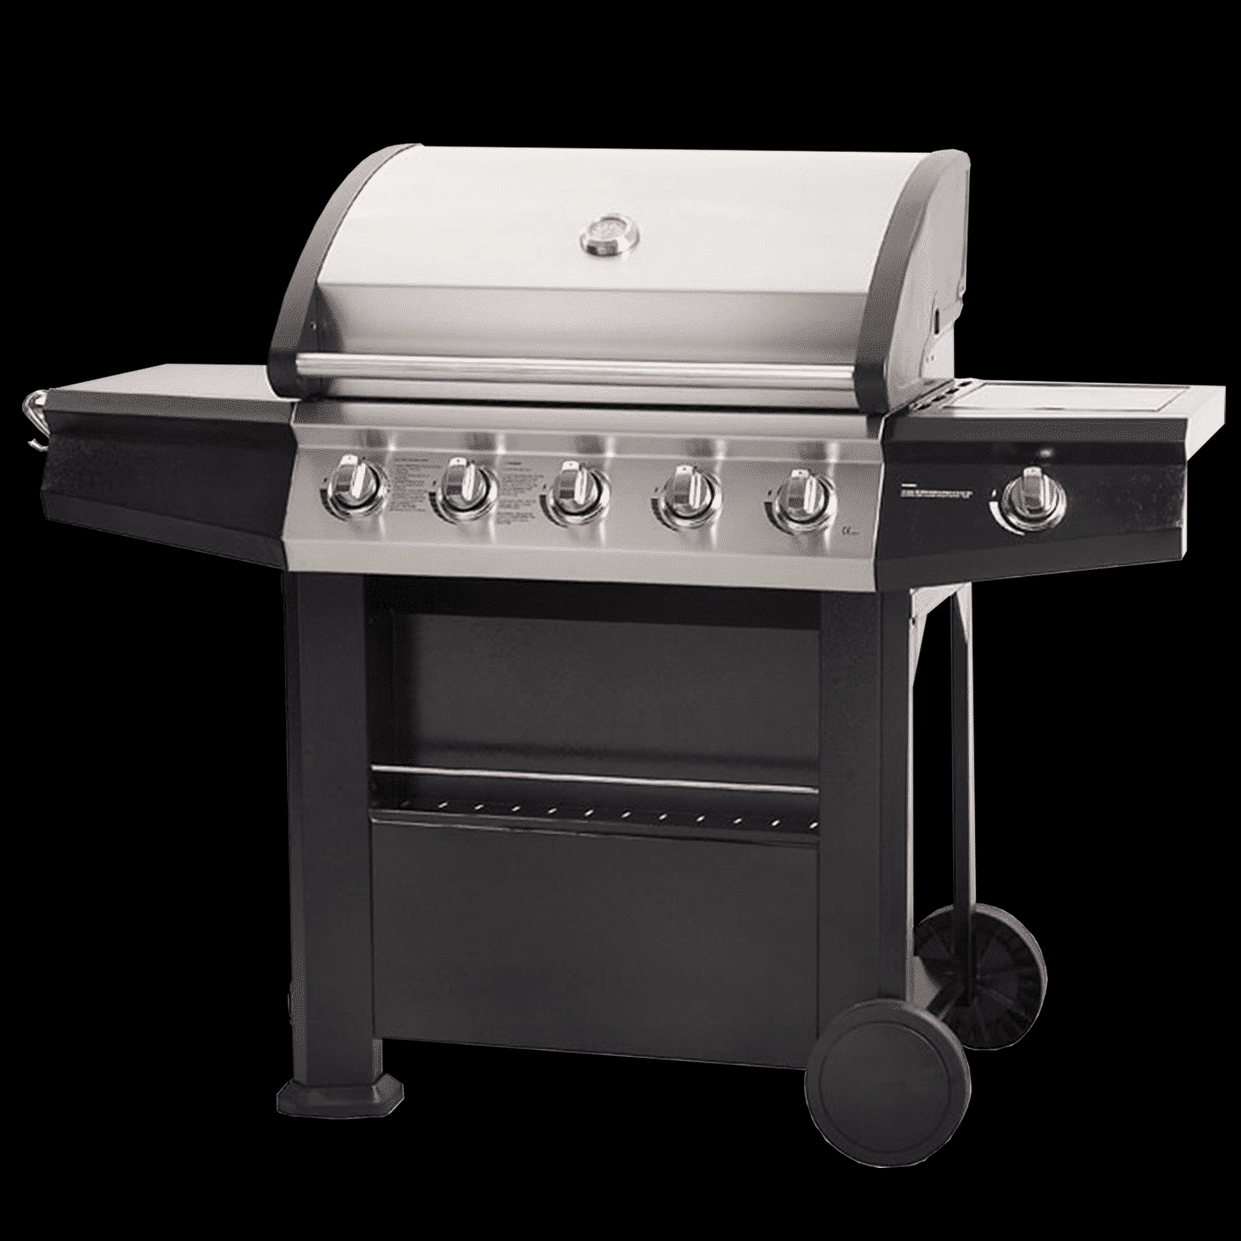 Lifestyle gas barbecue LFS683